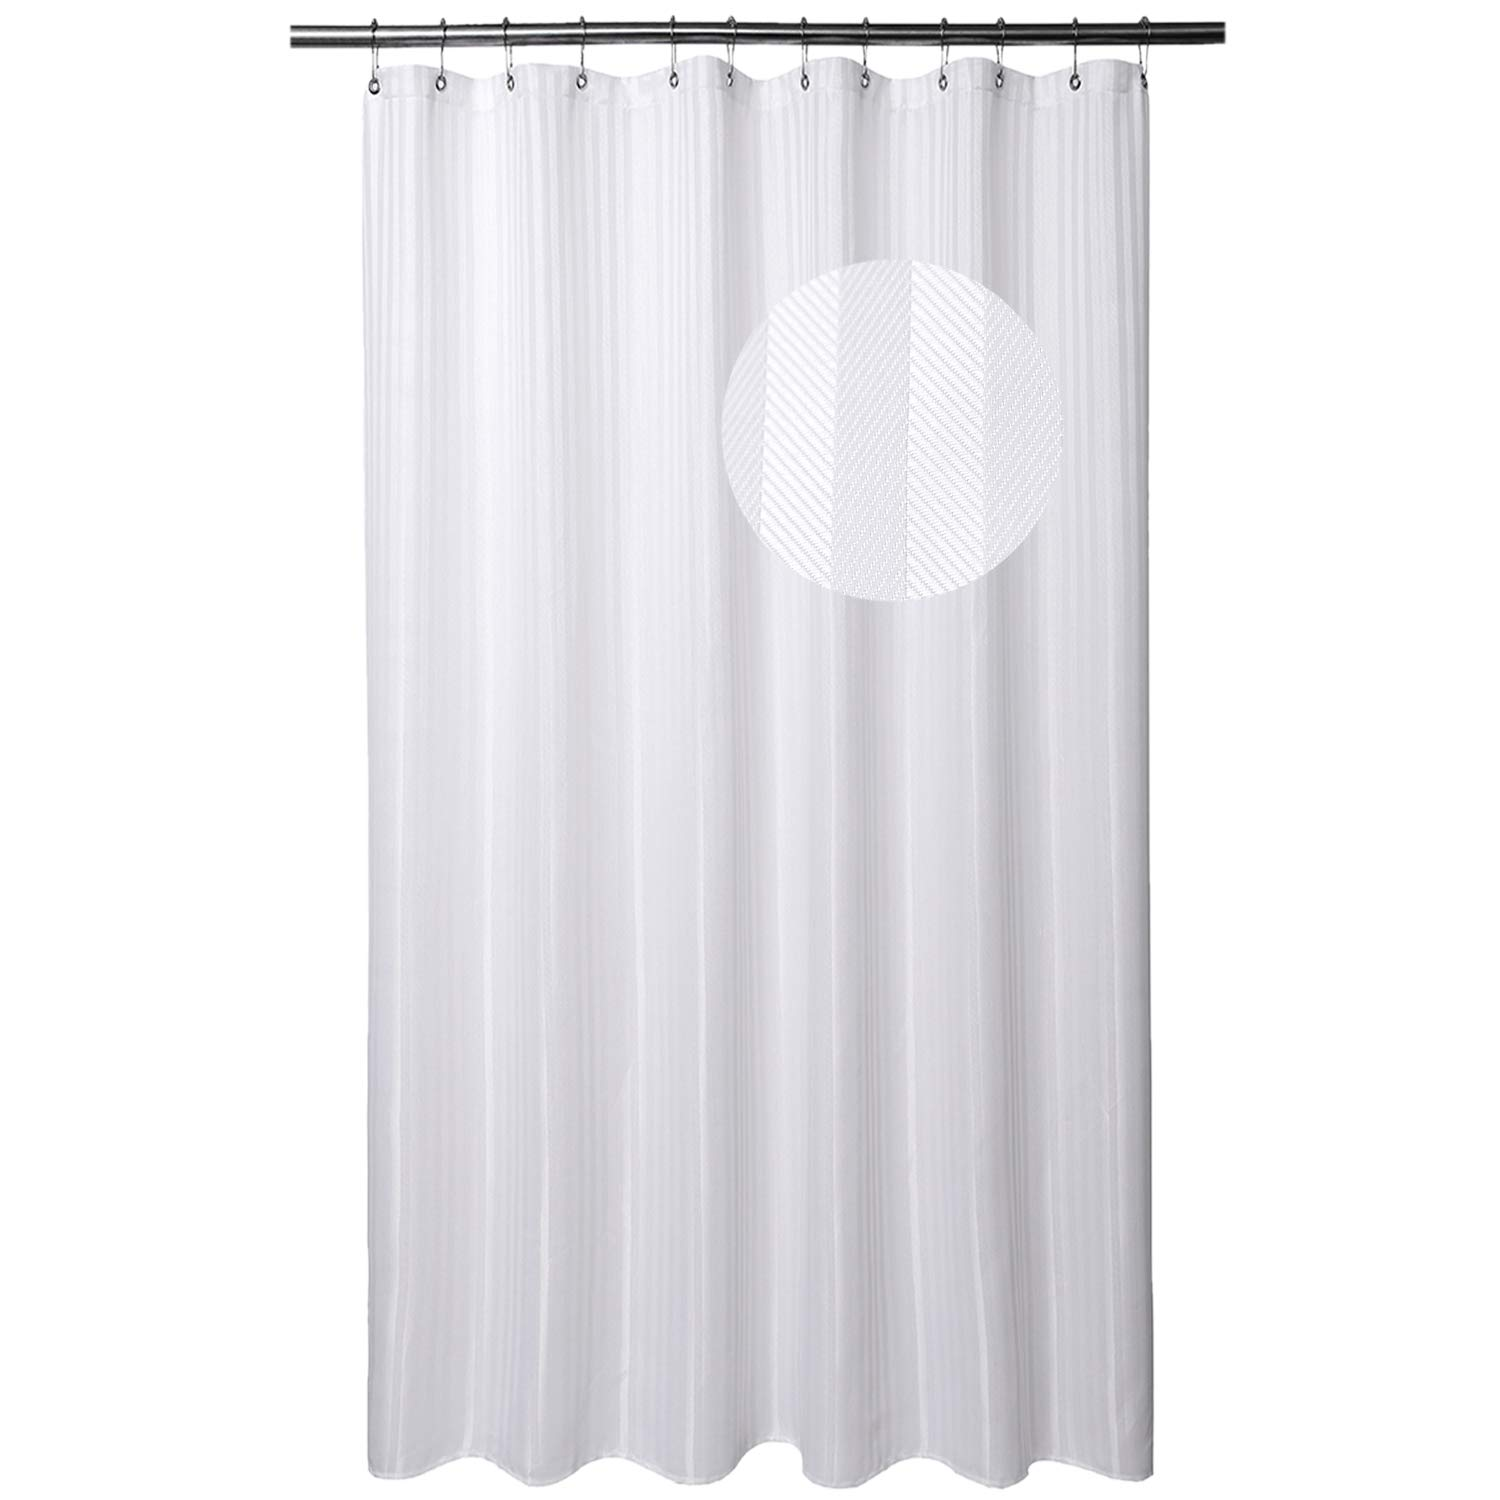 Barossa Design Extra Long Shower Curtain with 84 Inch Height - Herringbone & Striped Fabric, Hotel Grade, Machine Washable, Water Repellent, 160 GSM Heavyweight, White, 71x84